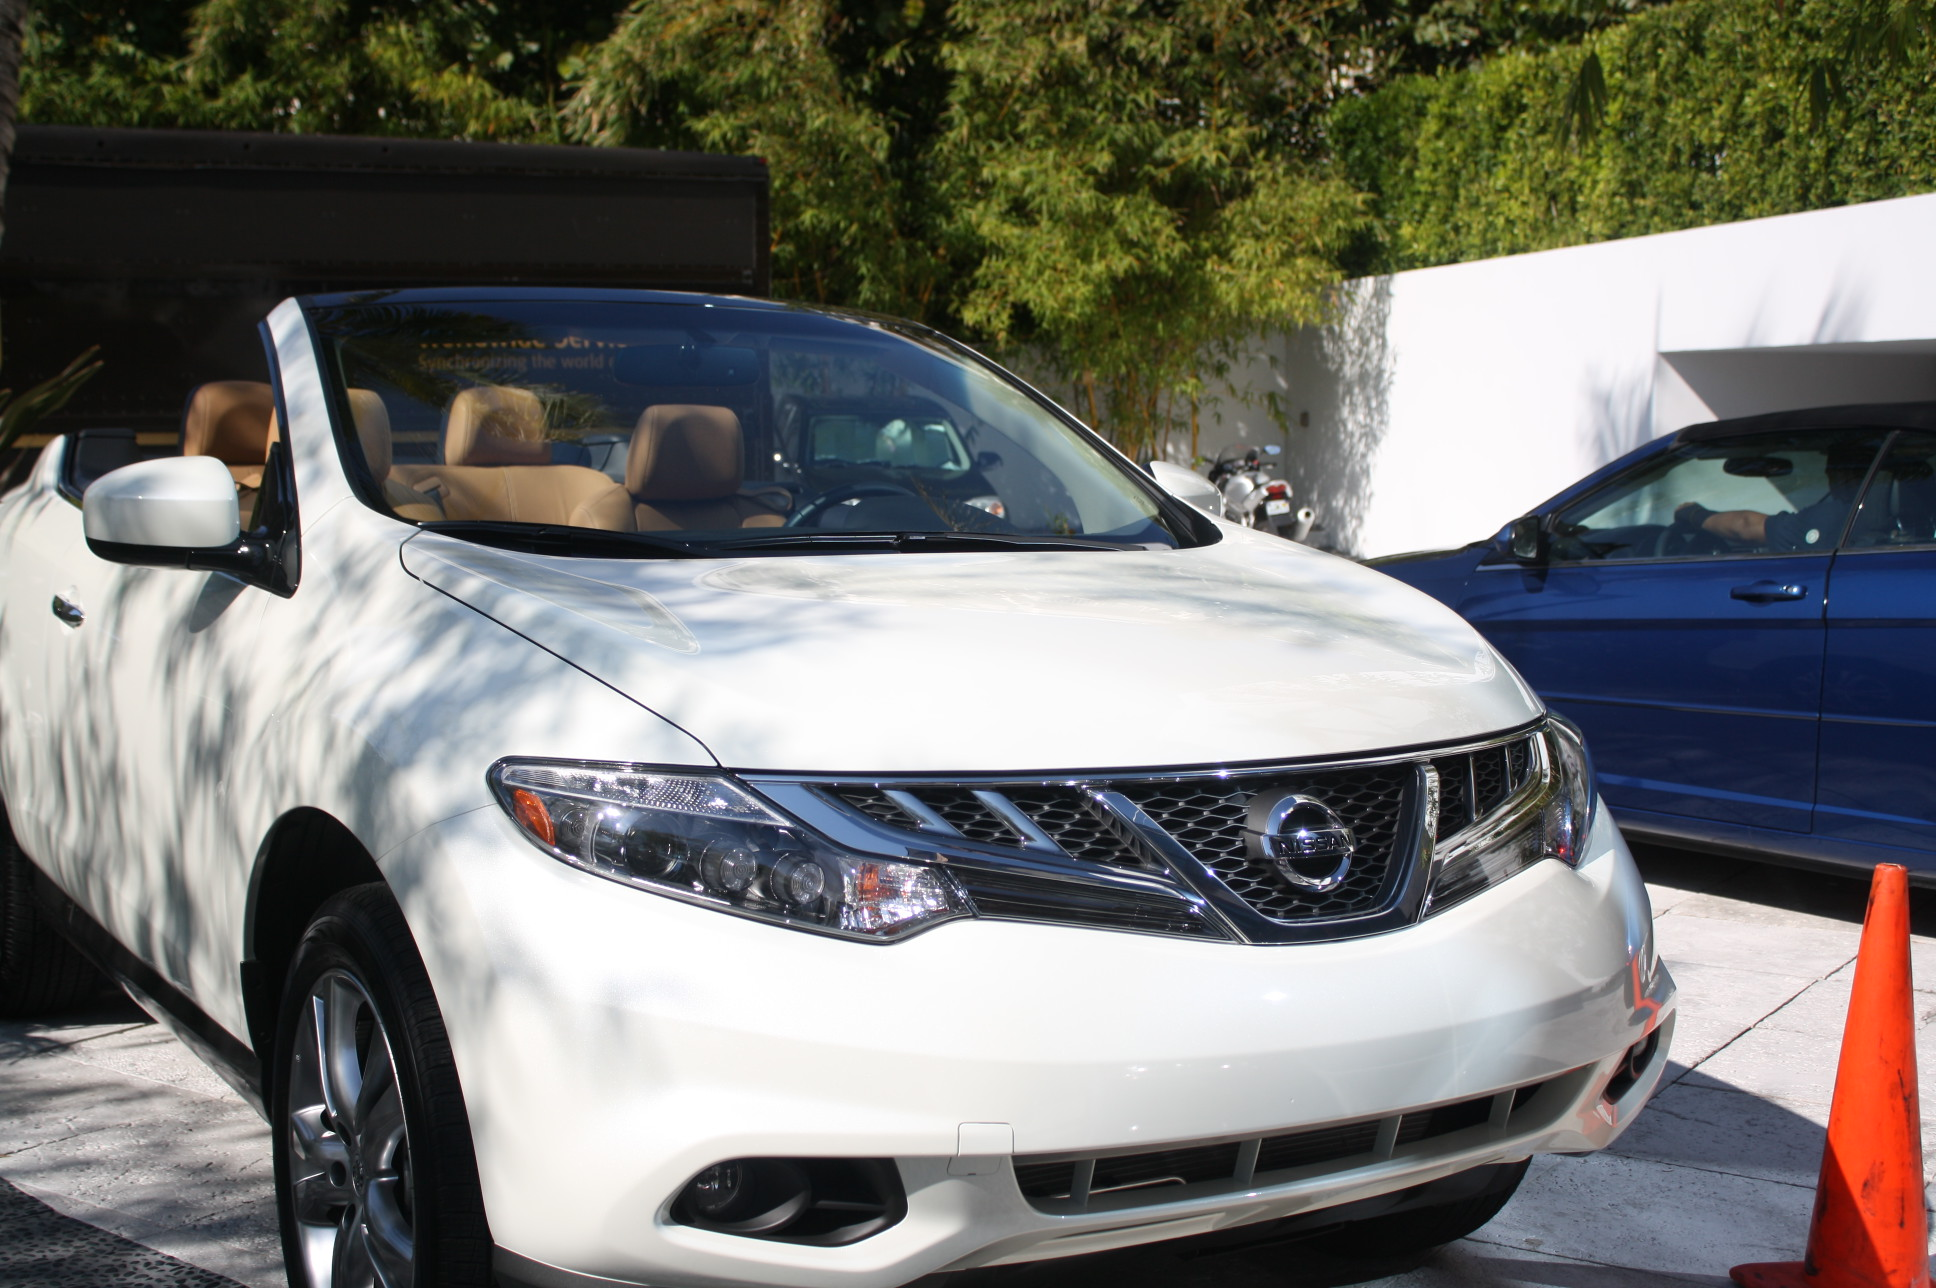 A glimpse at the Murano CrossCabriolet